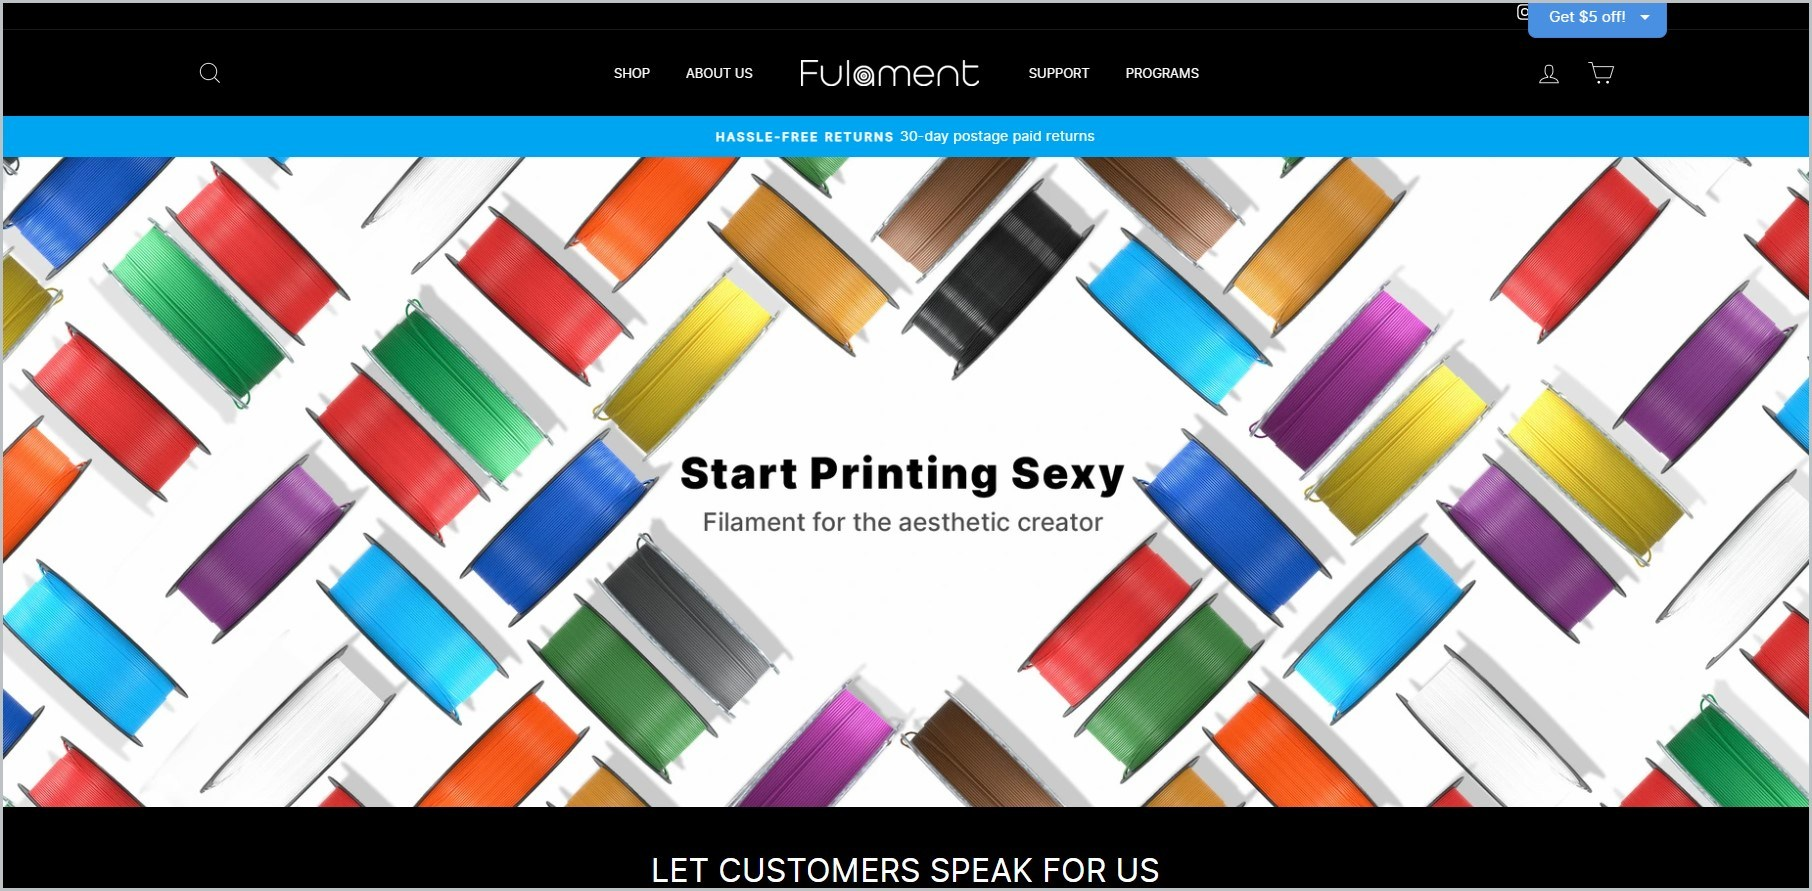 screenshot of Fulament homepage showcasing filaments of different colors